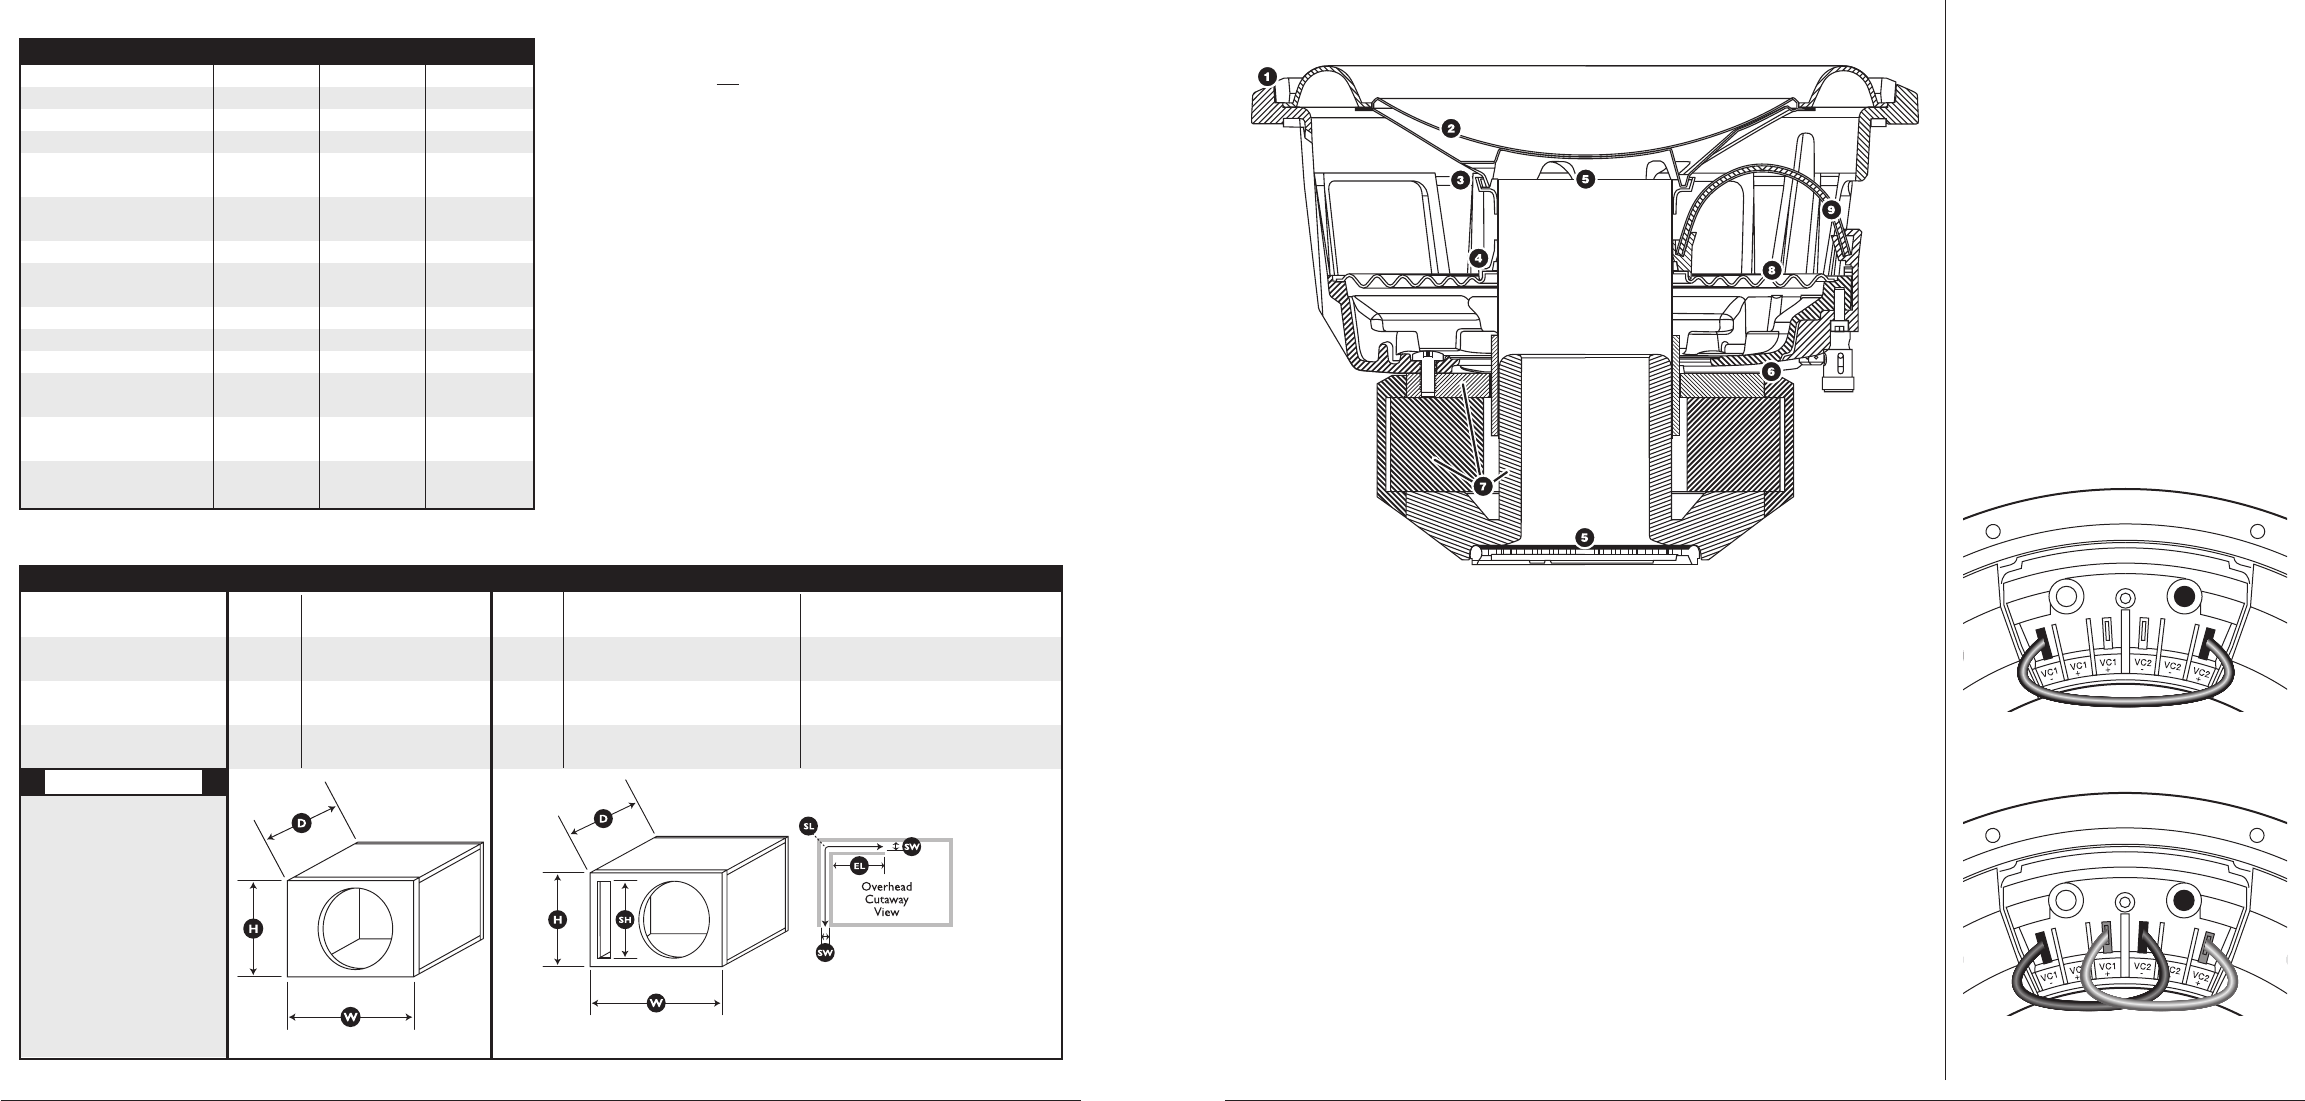 596afd09 064e 6f84 6d6b 3c5d40f0eb41 bg2 page 2 of jl audio speaker 10w6v2 d4 user guide manualsonline com jl audio subwoofer wiring diagram at alyssarenee.co